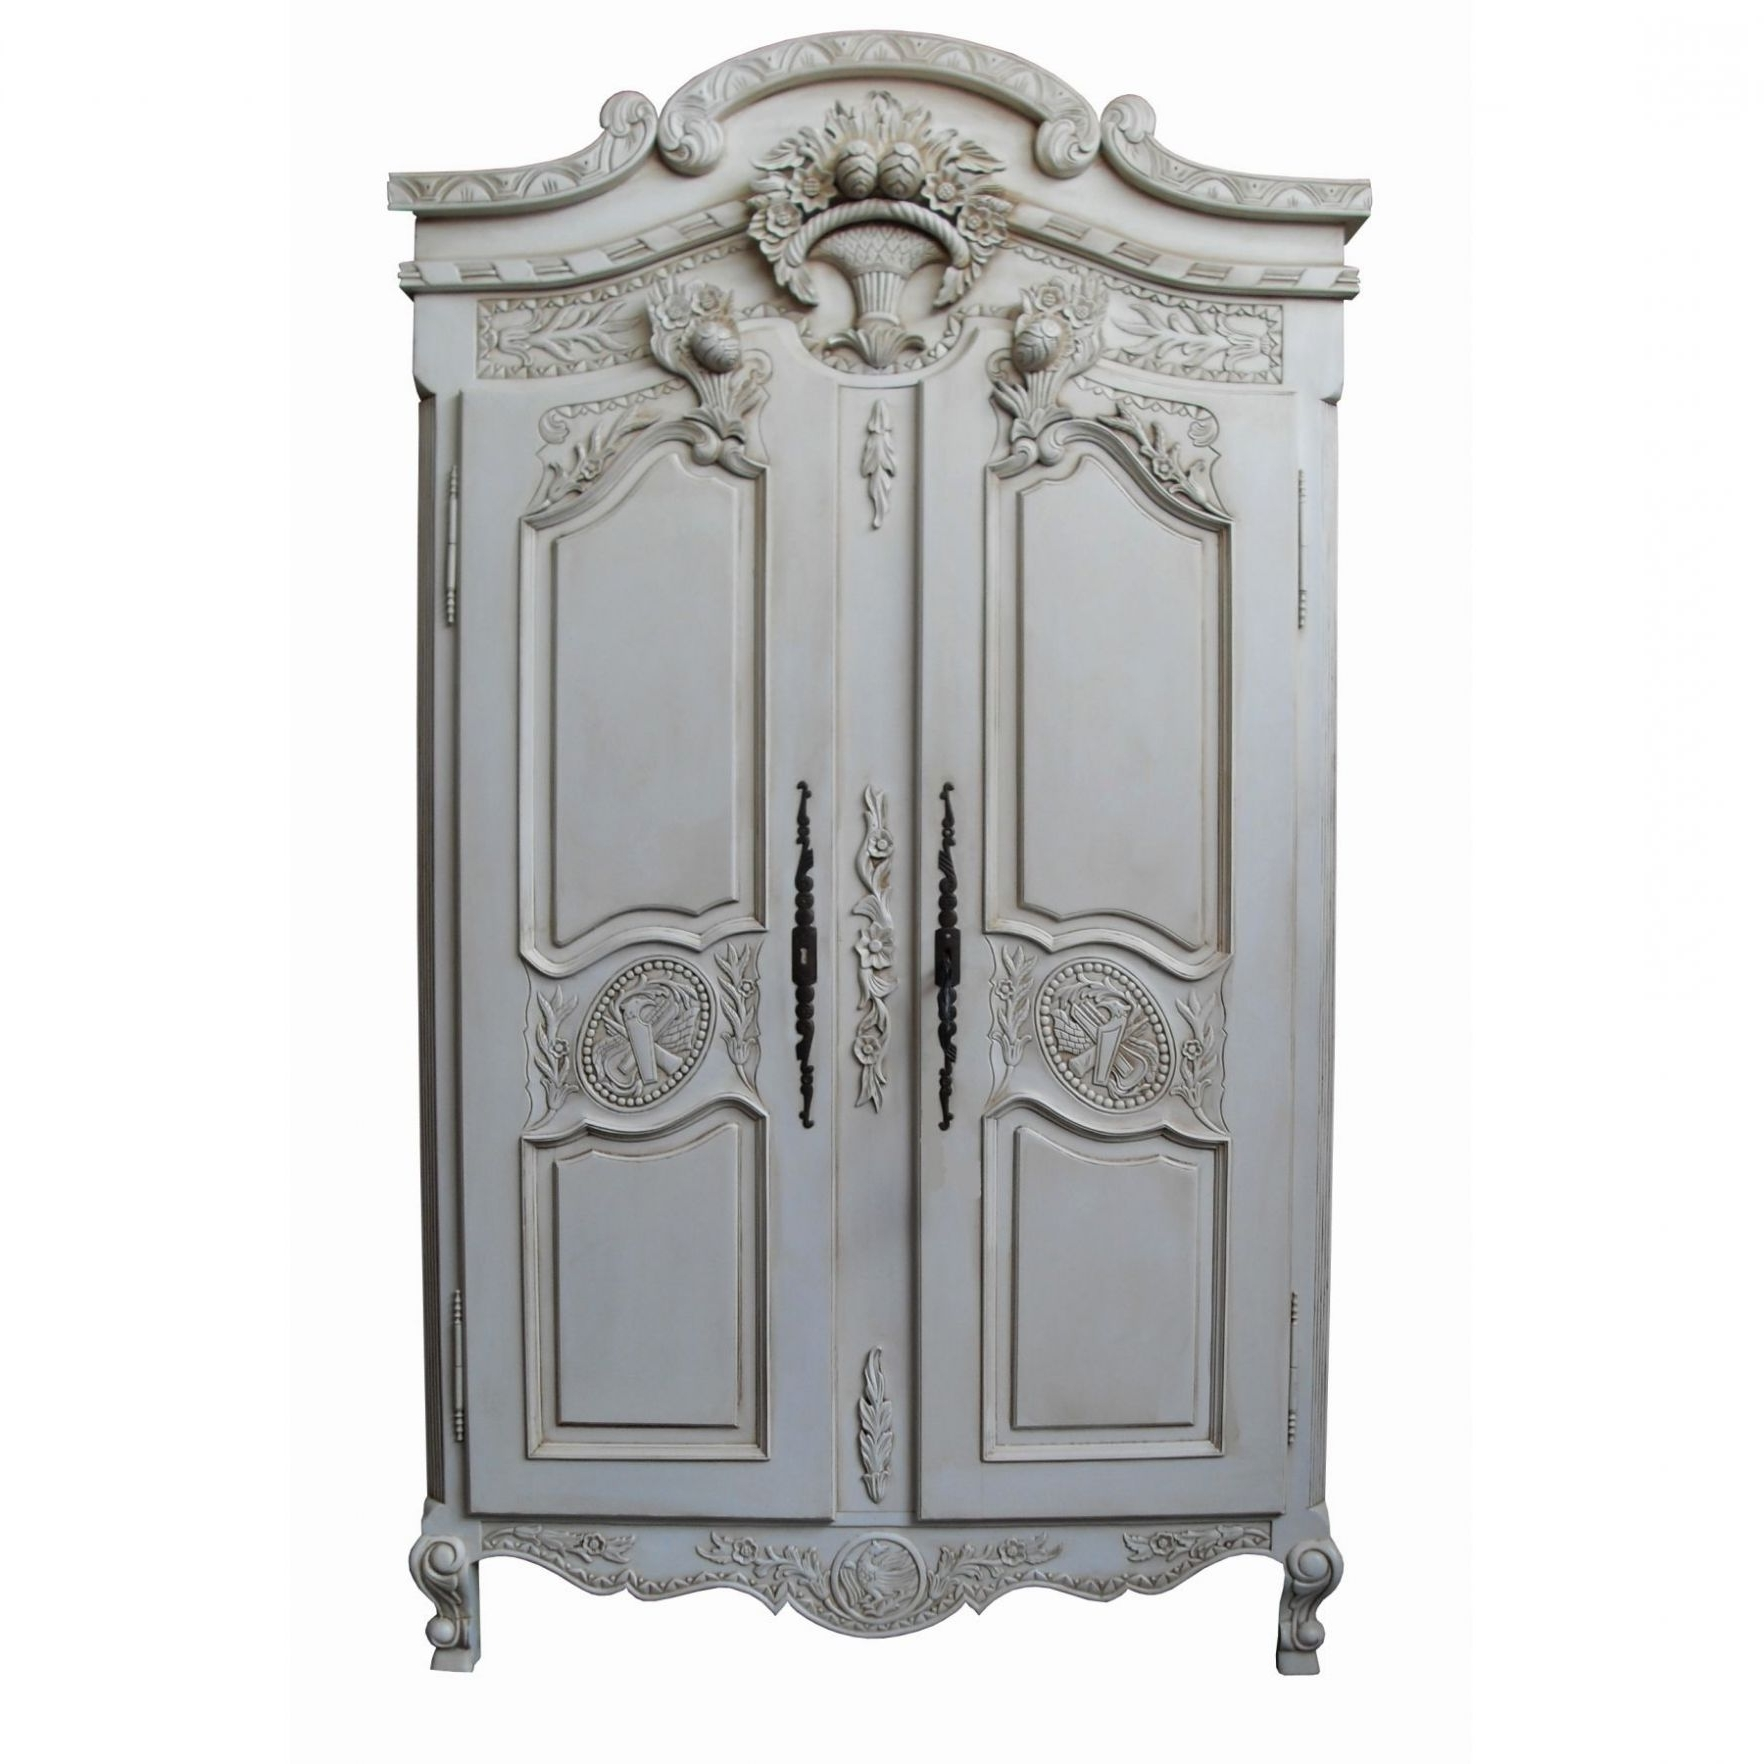 White Antique Wardrobes Intended For Recent Rococo Antique French Wardrobe (ordinary Antique Wardrobes # (View 7 of 15)